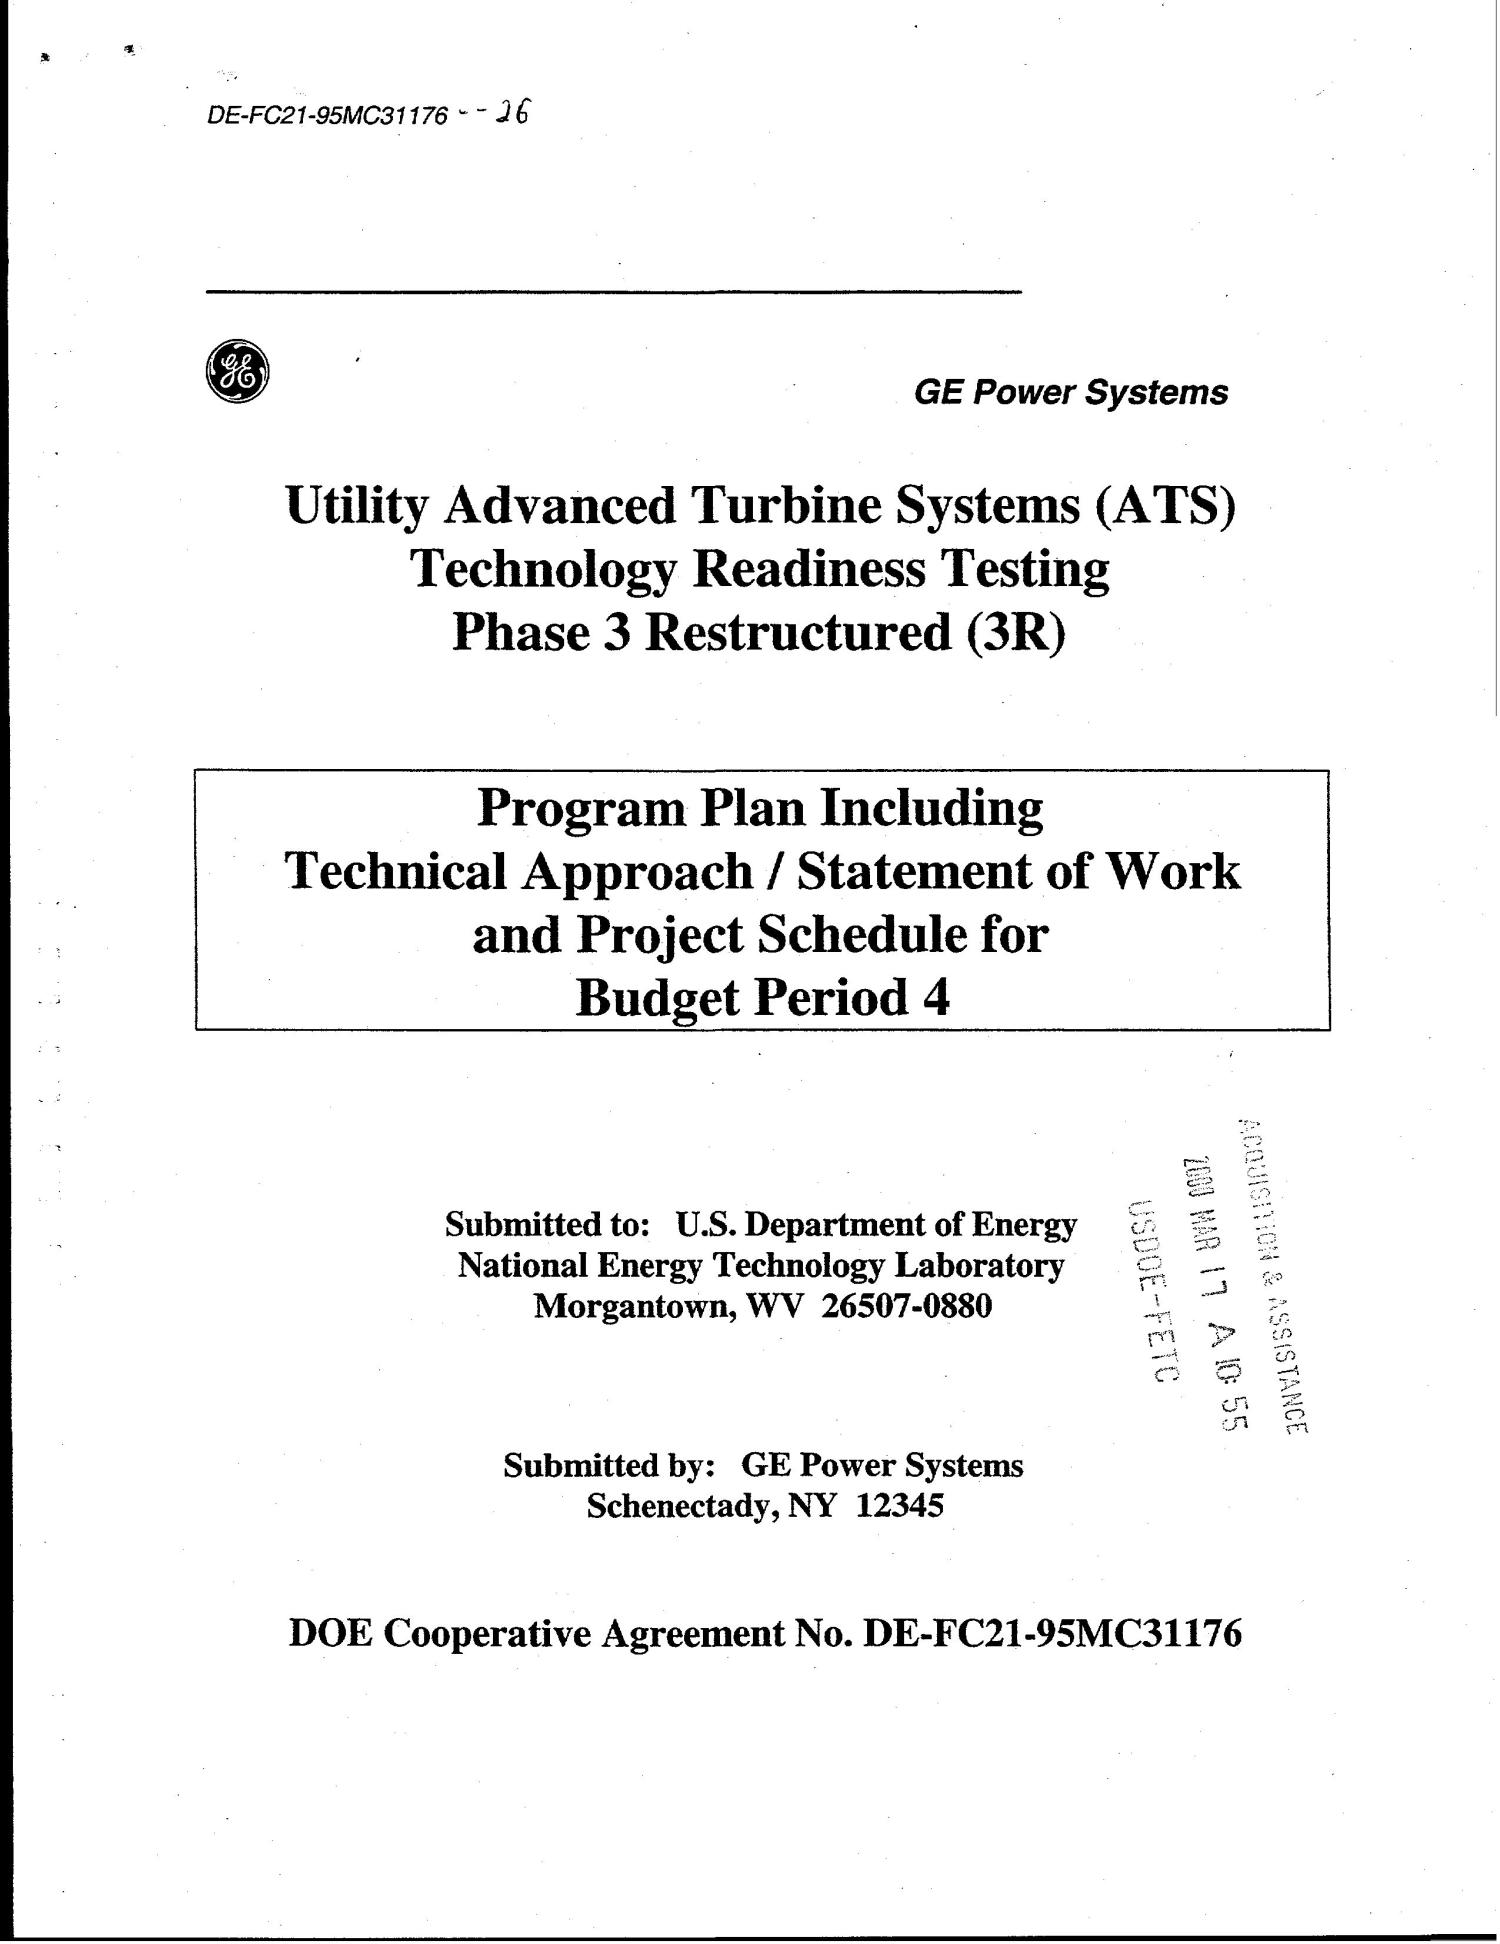 UTILITY ADVANCED TURBINE SYSTEMS (ATS) TECHNOLOGY READINESS TESTING PHASE 3 RESTRUCTURED (3R)                                                                                                      [Sequence #]: 1 of 49